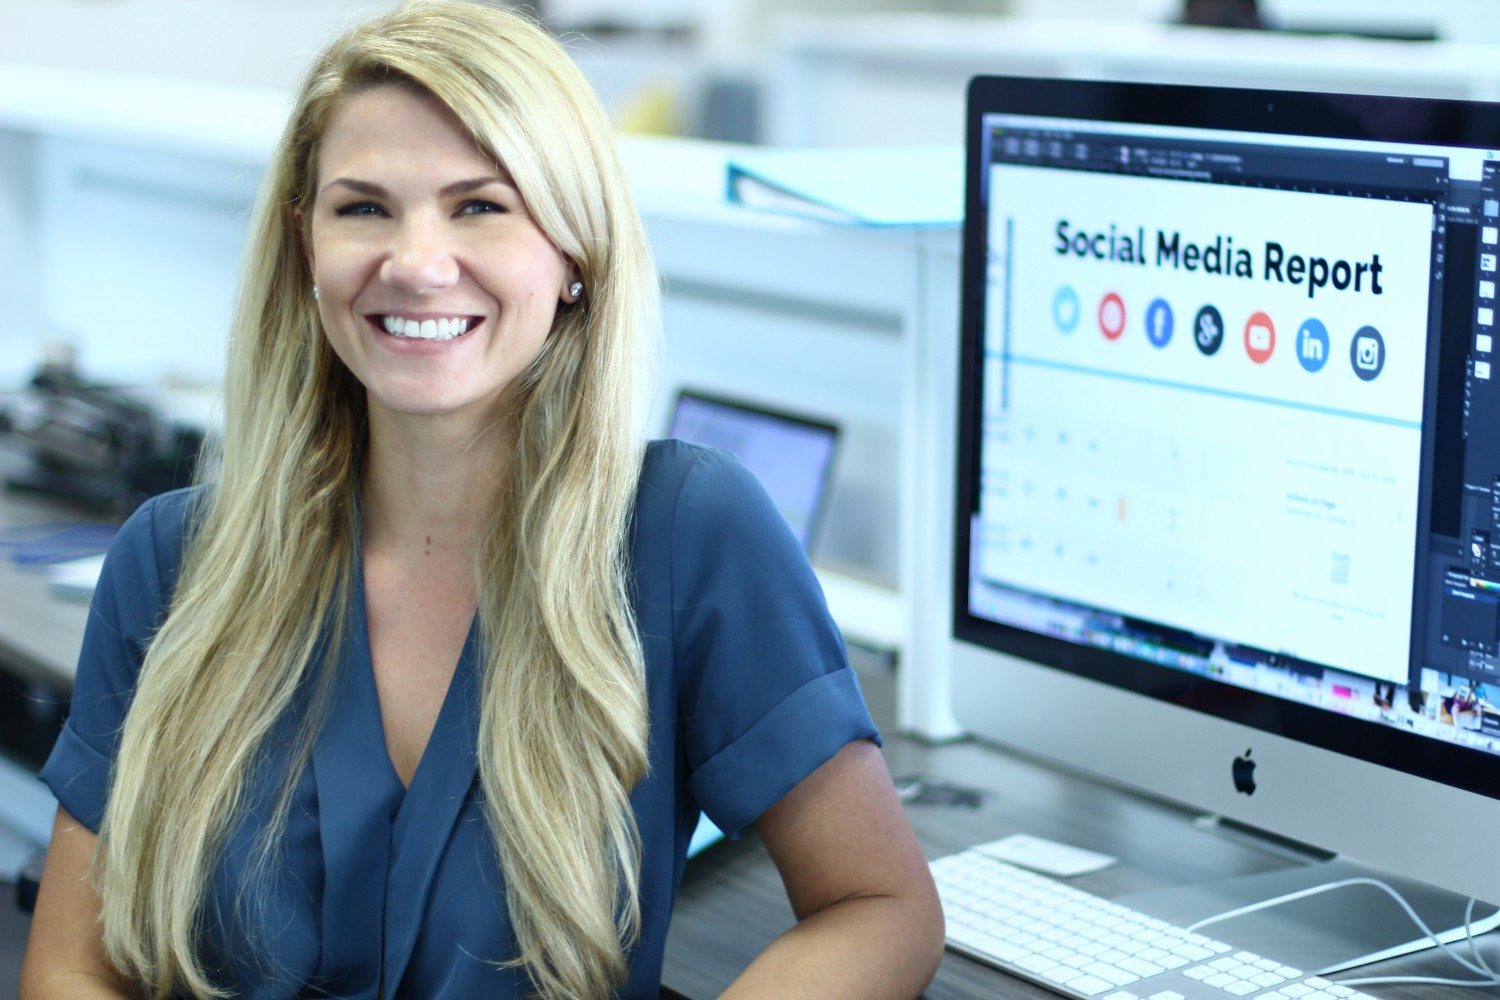 teodora-thompson-certified-social-media-marketer-miami